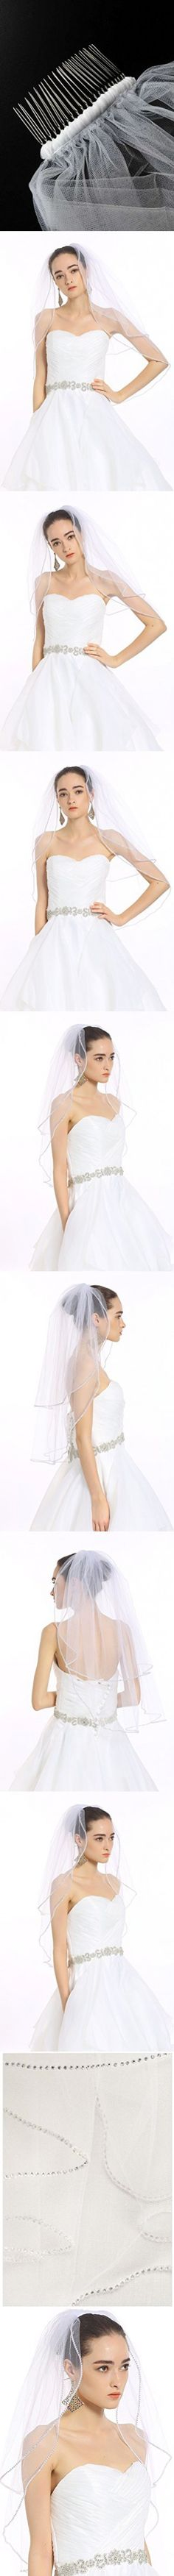 """Passat Ivory 2T Two Tier Short Sparkling Rhinestone Edged Mid Veil Wedding Bridal Veil 225 Size 2T(1st tier 24"""", 2nd tier 36"""") Color Ivory"""